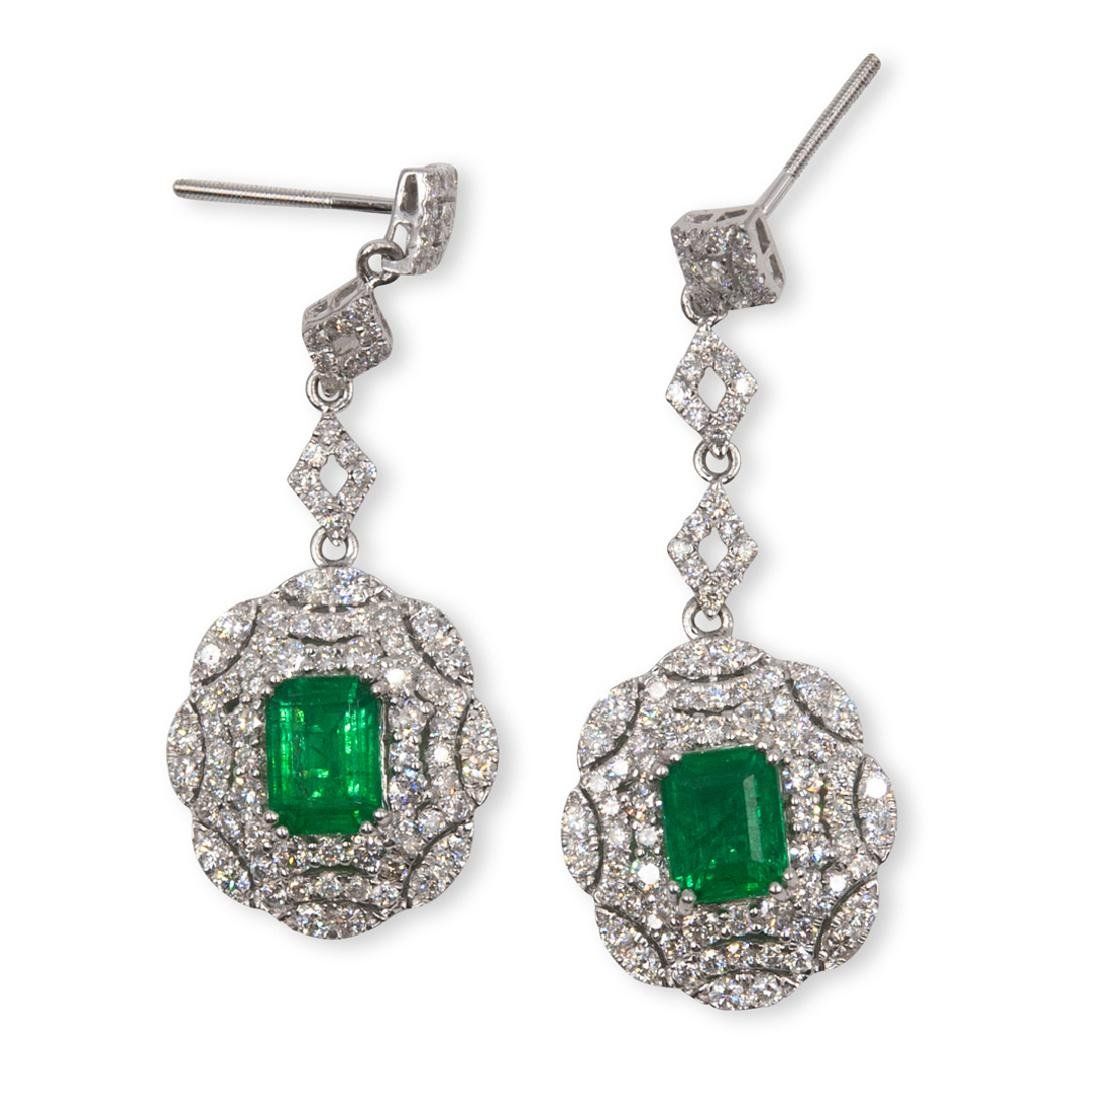 Pair Of Platinum, Emerald and Diamond Earrings